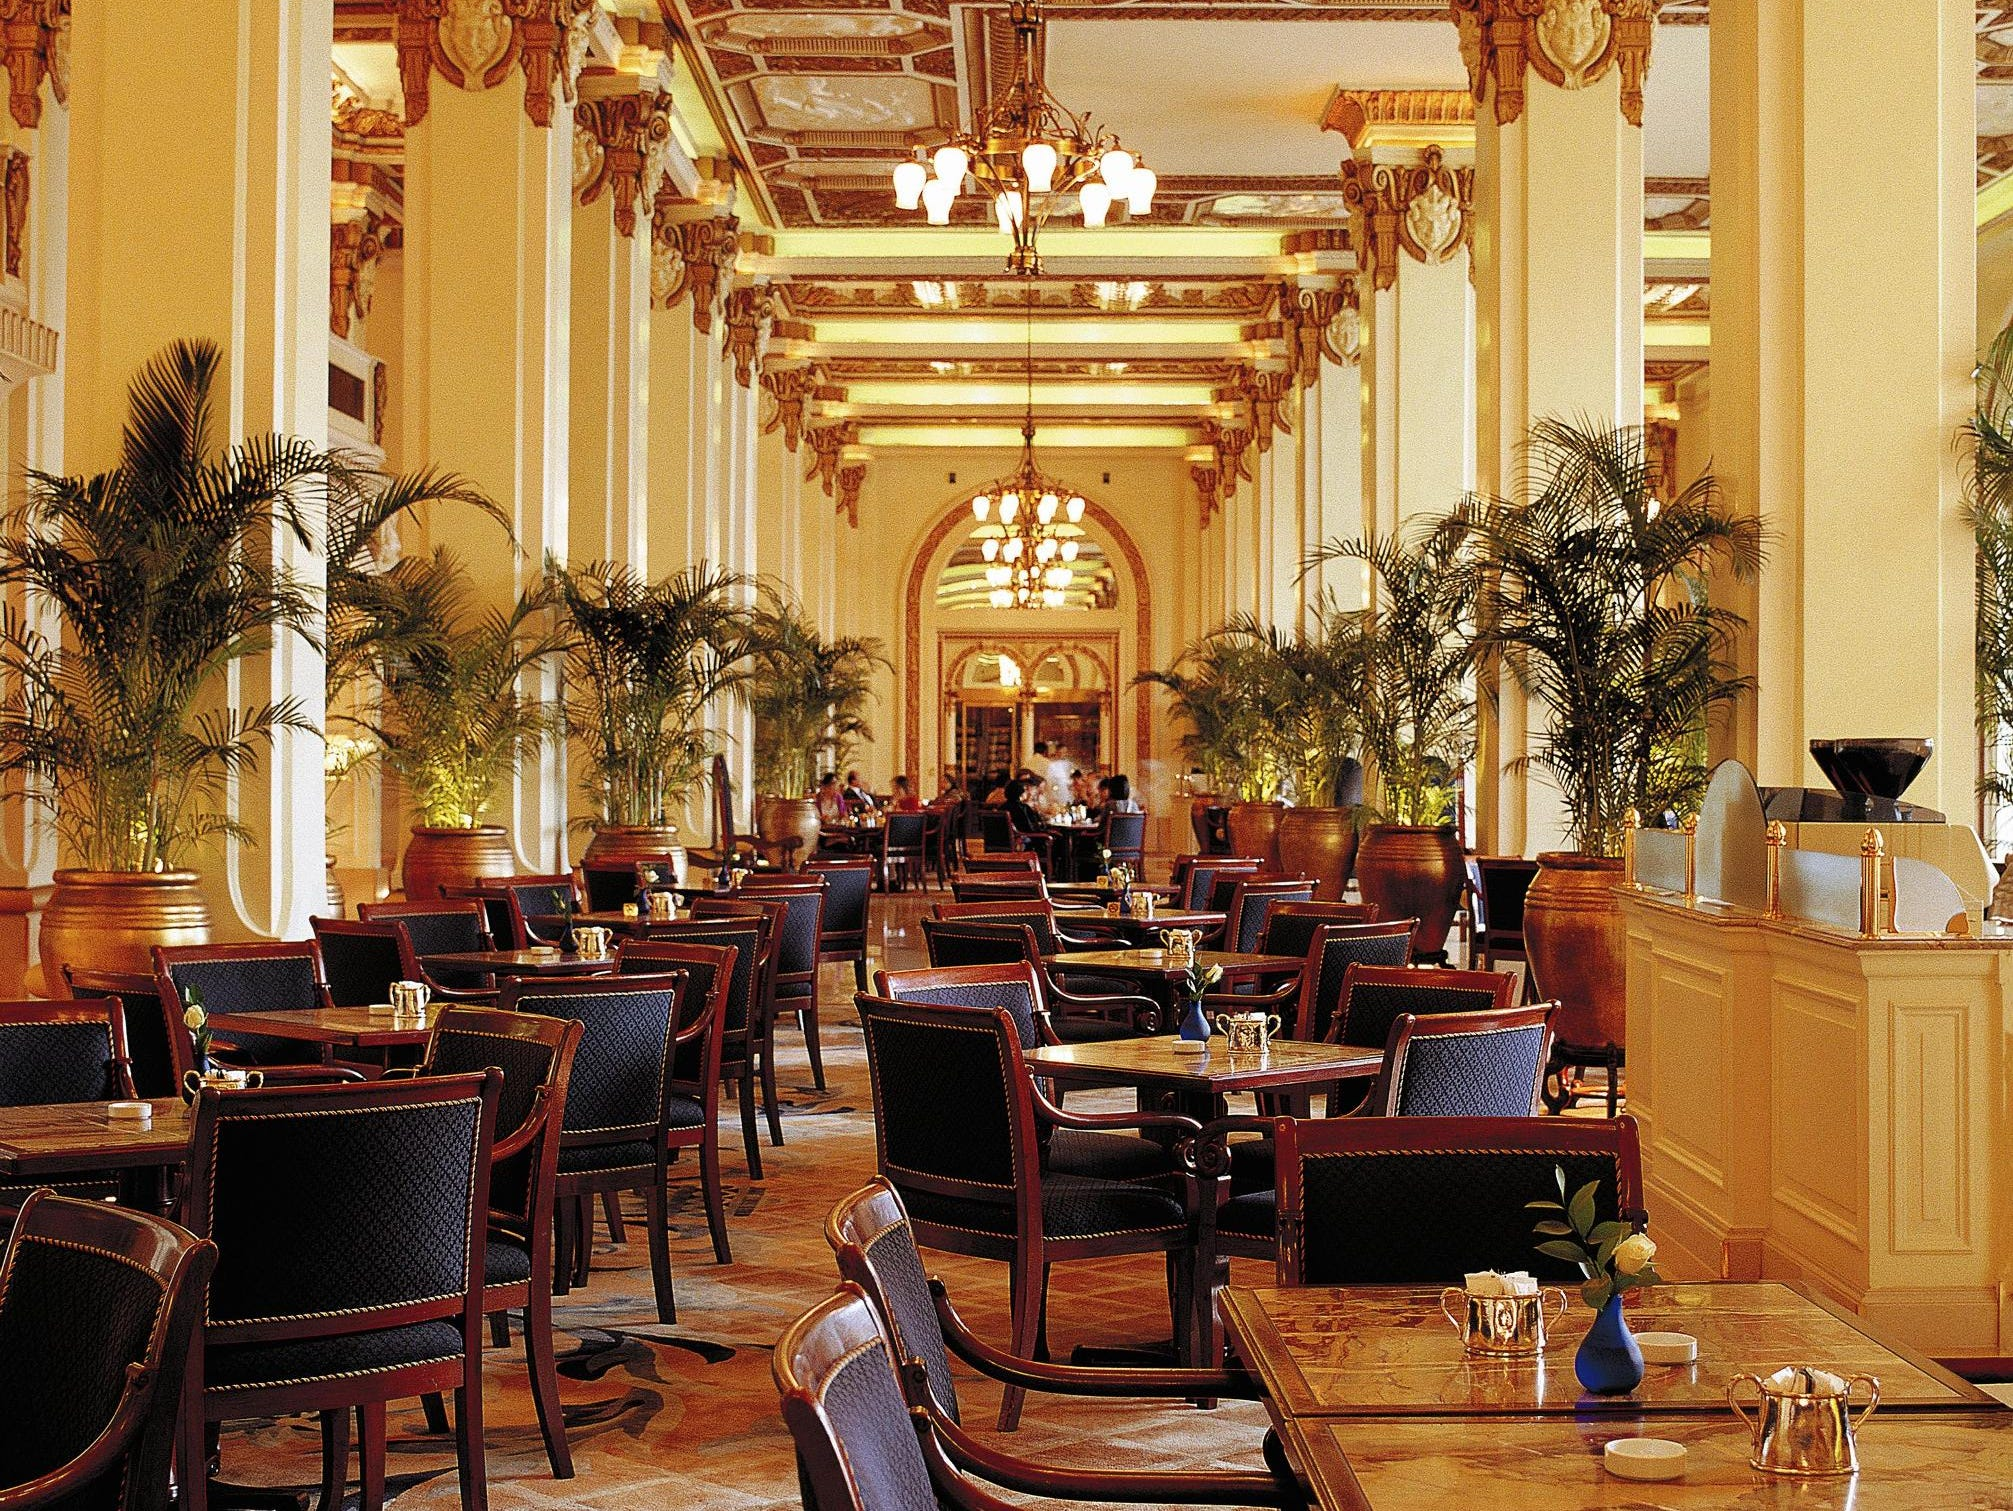 The Peninsula Hotel, Hong Kong, has a classic airy feel and has been drawing people to its lobby area since it opened 85 years ago.